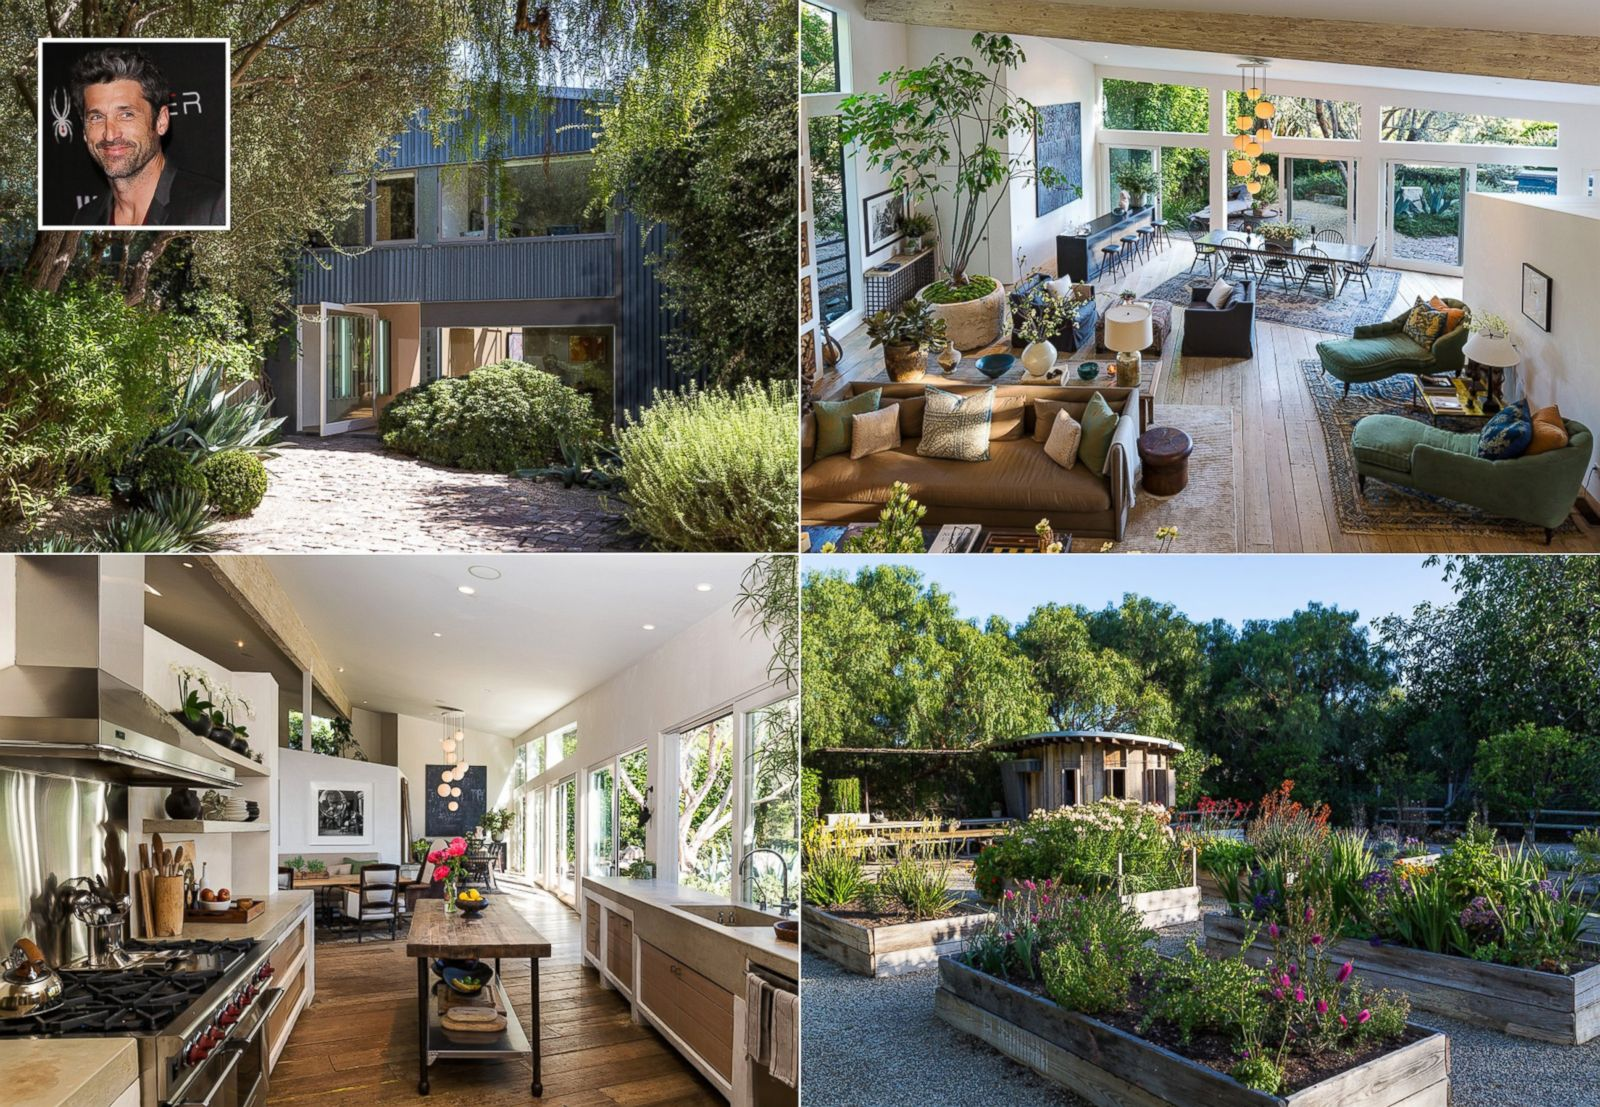 The Oakland Home Of Patrick Printy: You Can Buy Patrick Dempsey's Home Picture